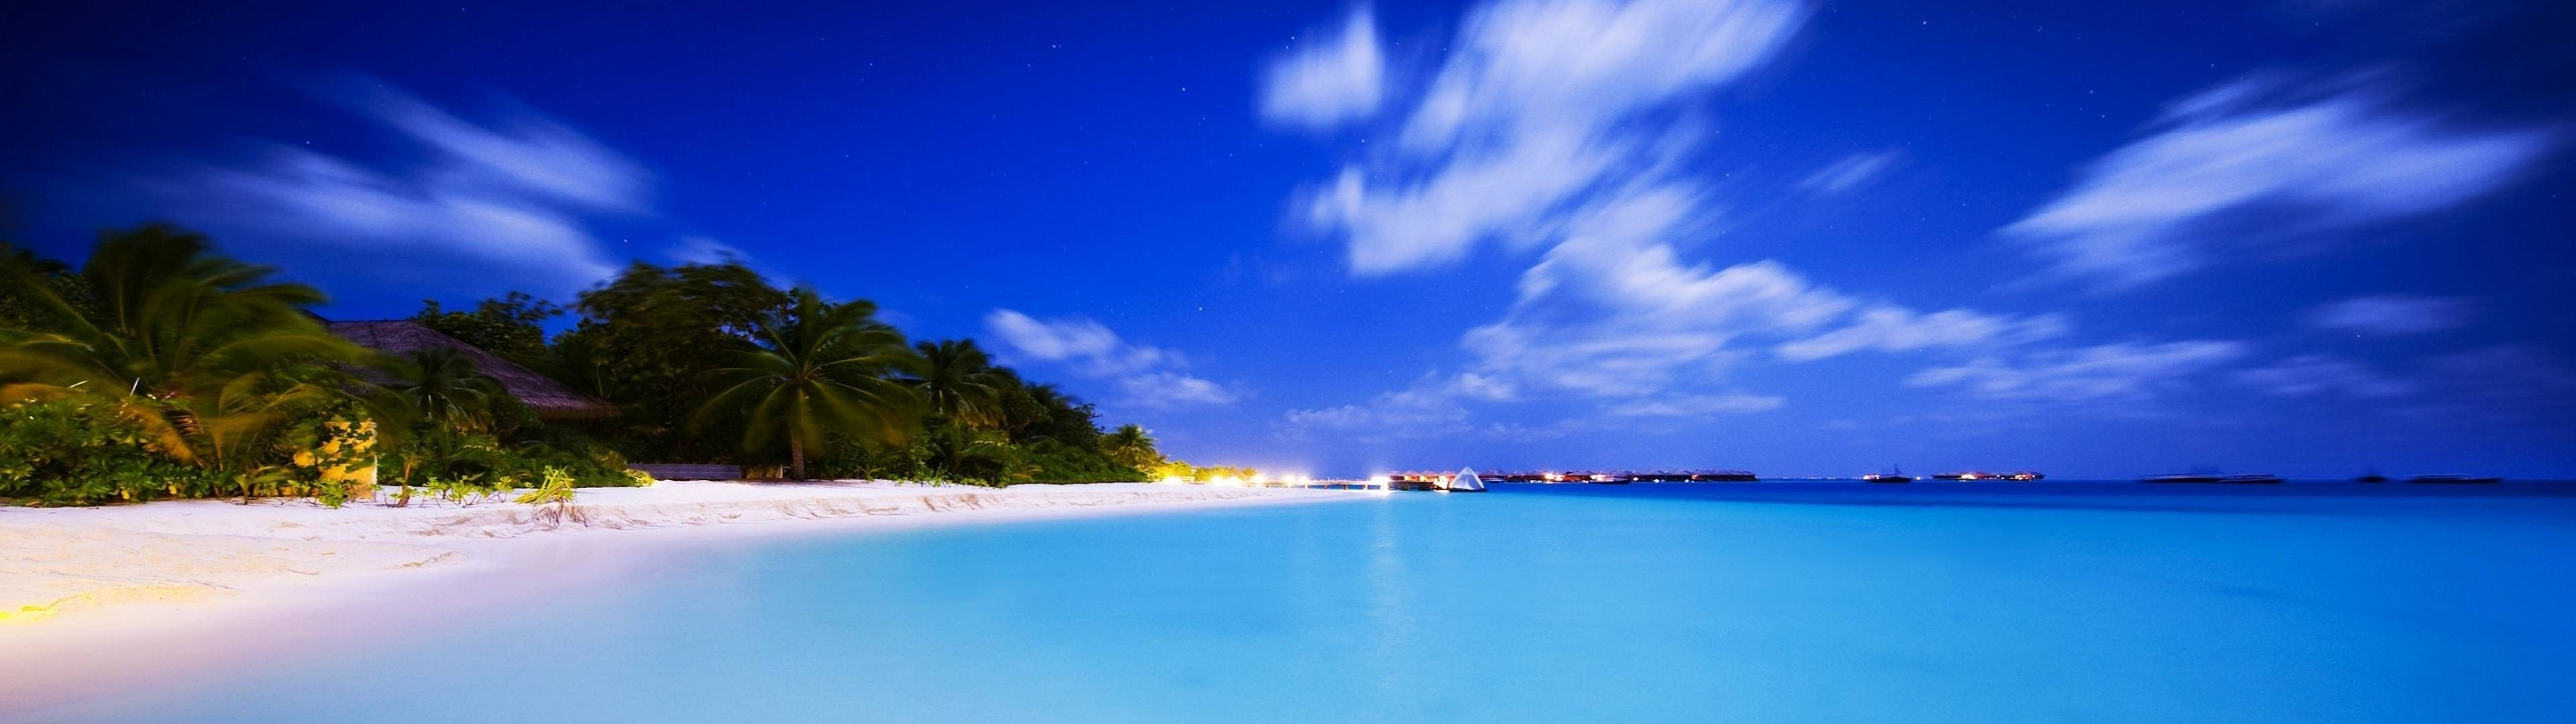 3840 X 1080 Blue Wallpapers Top Free 3840 X 1080 Blue Backgrounds Wallpaperaccess